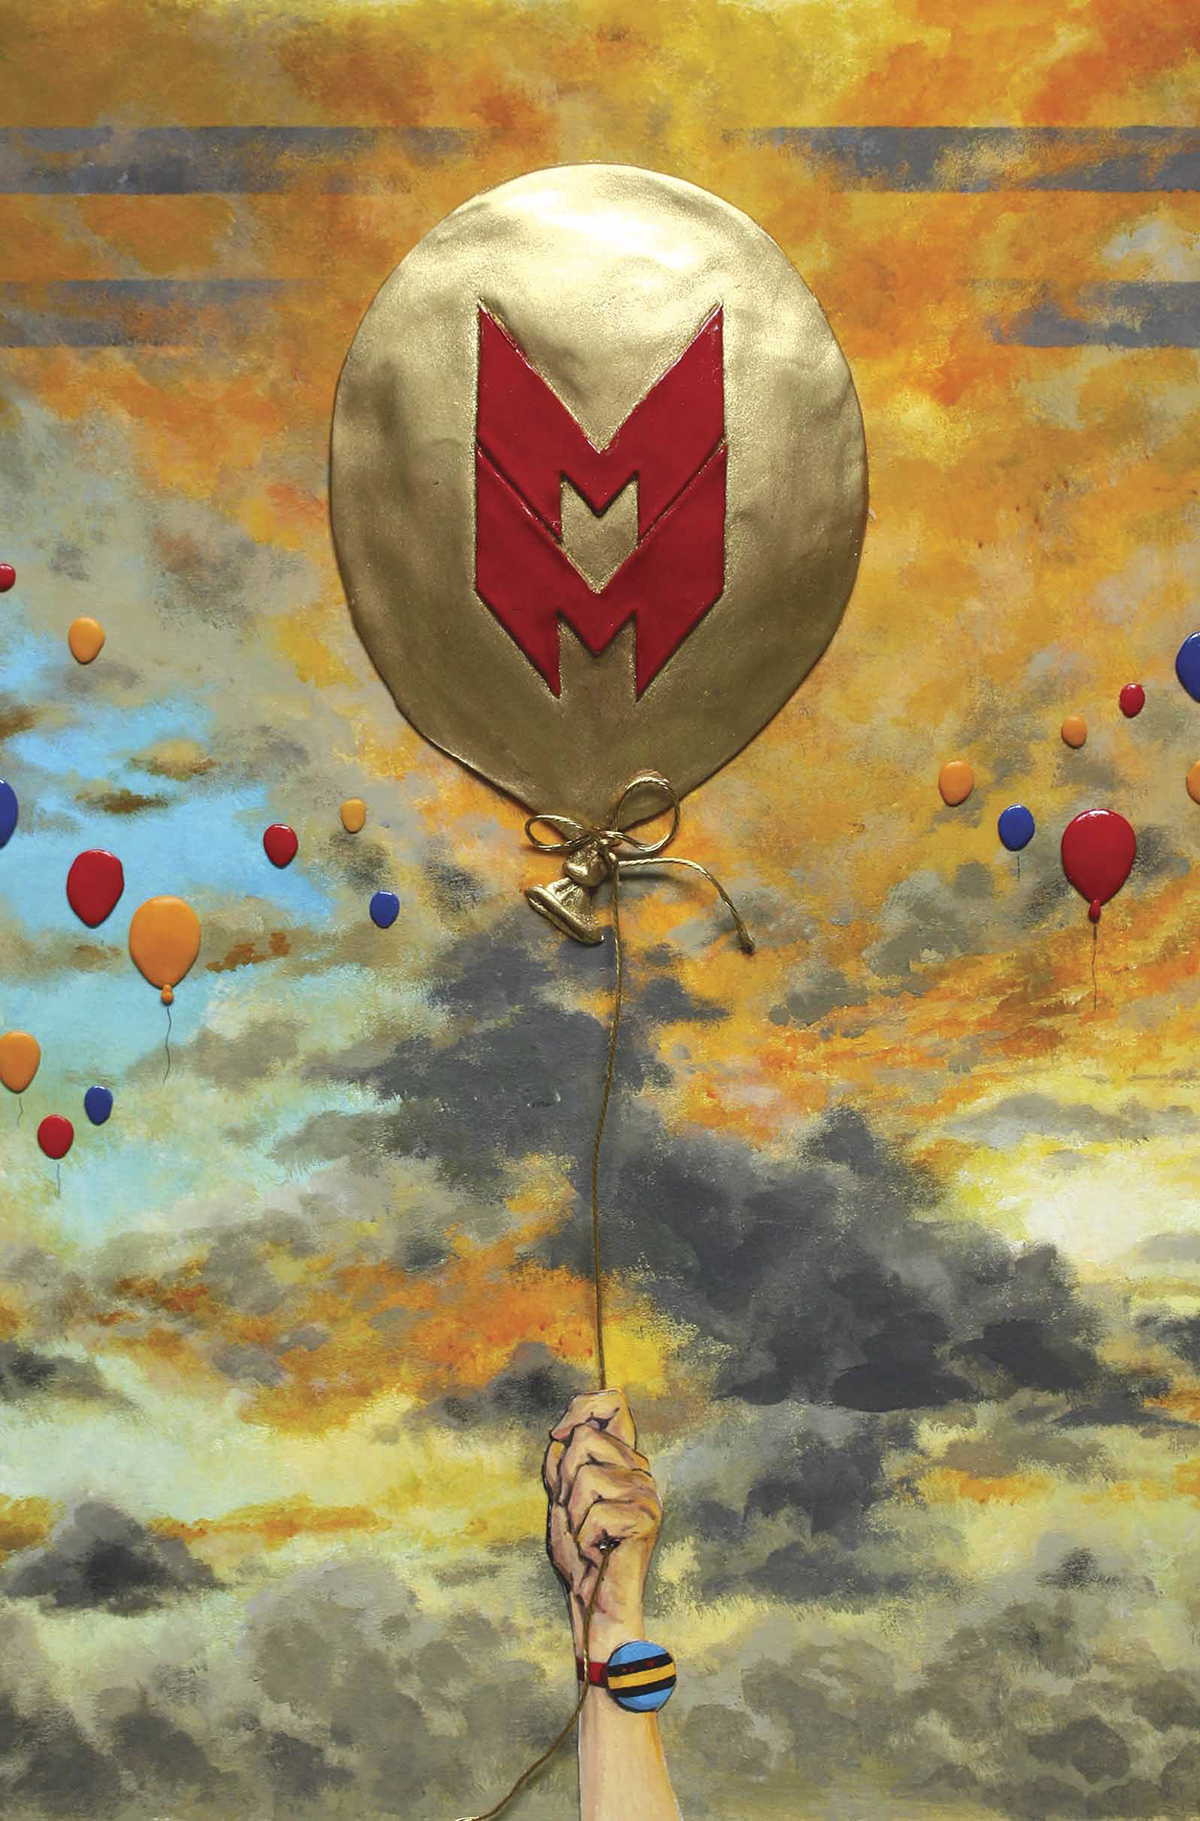 MIRACLEMAN BY GAIMAN AND BUCKINGHAM #6